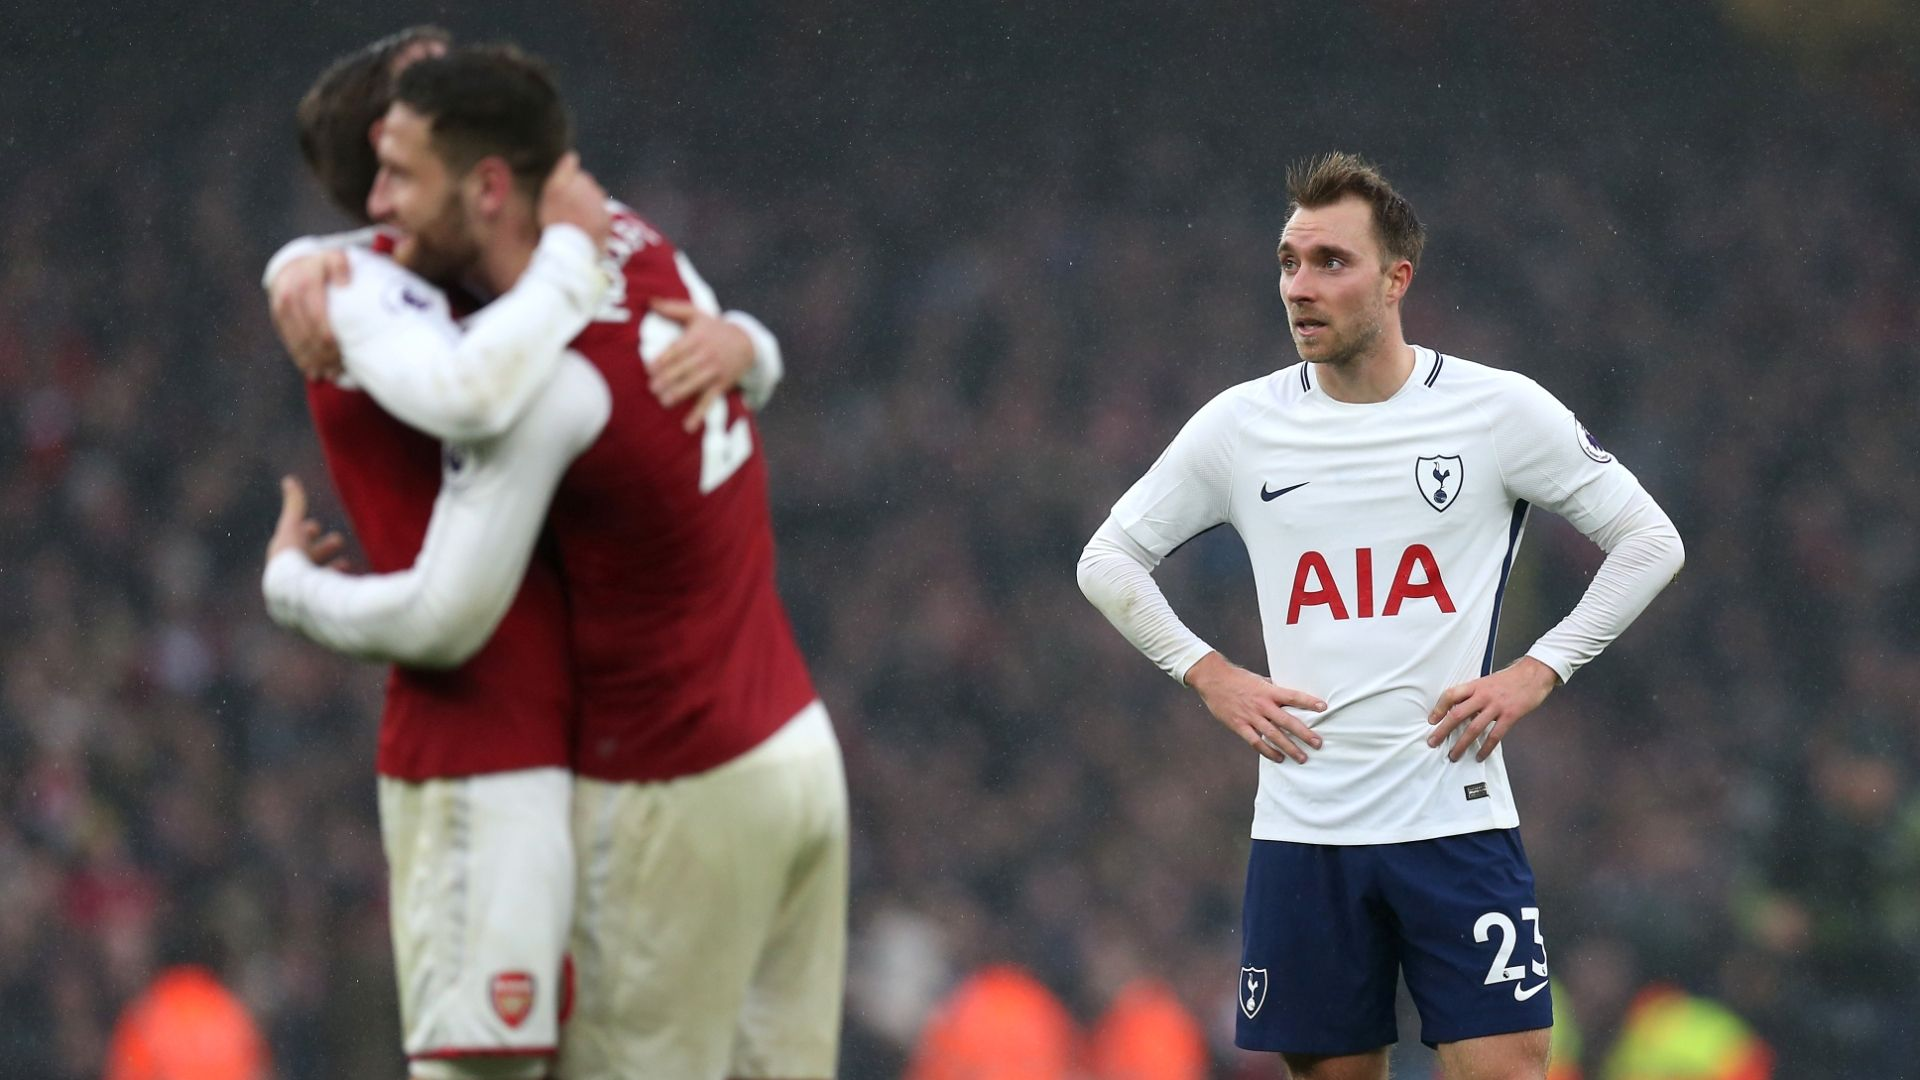 Can Spurs respond to Arsenal defeat?